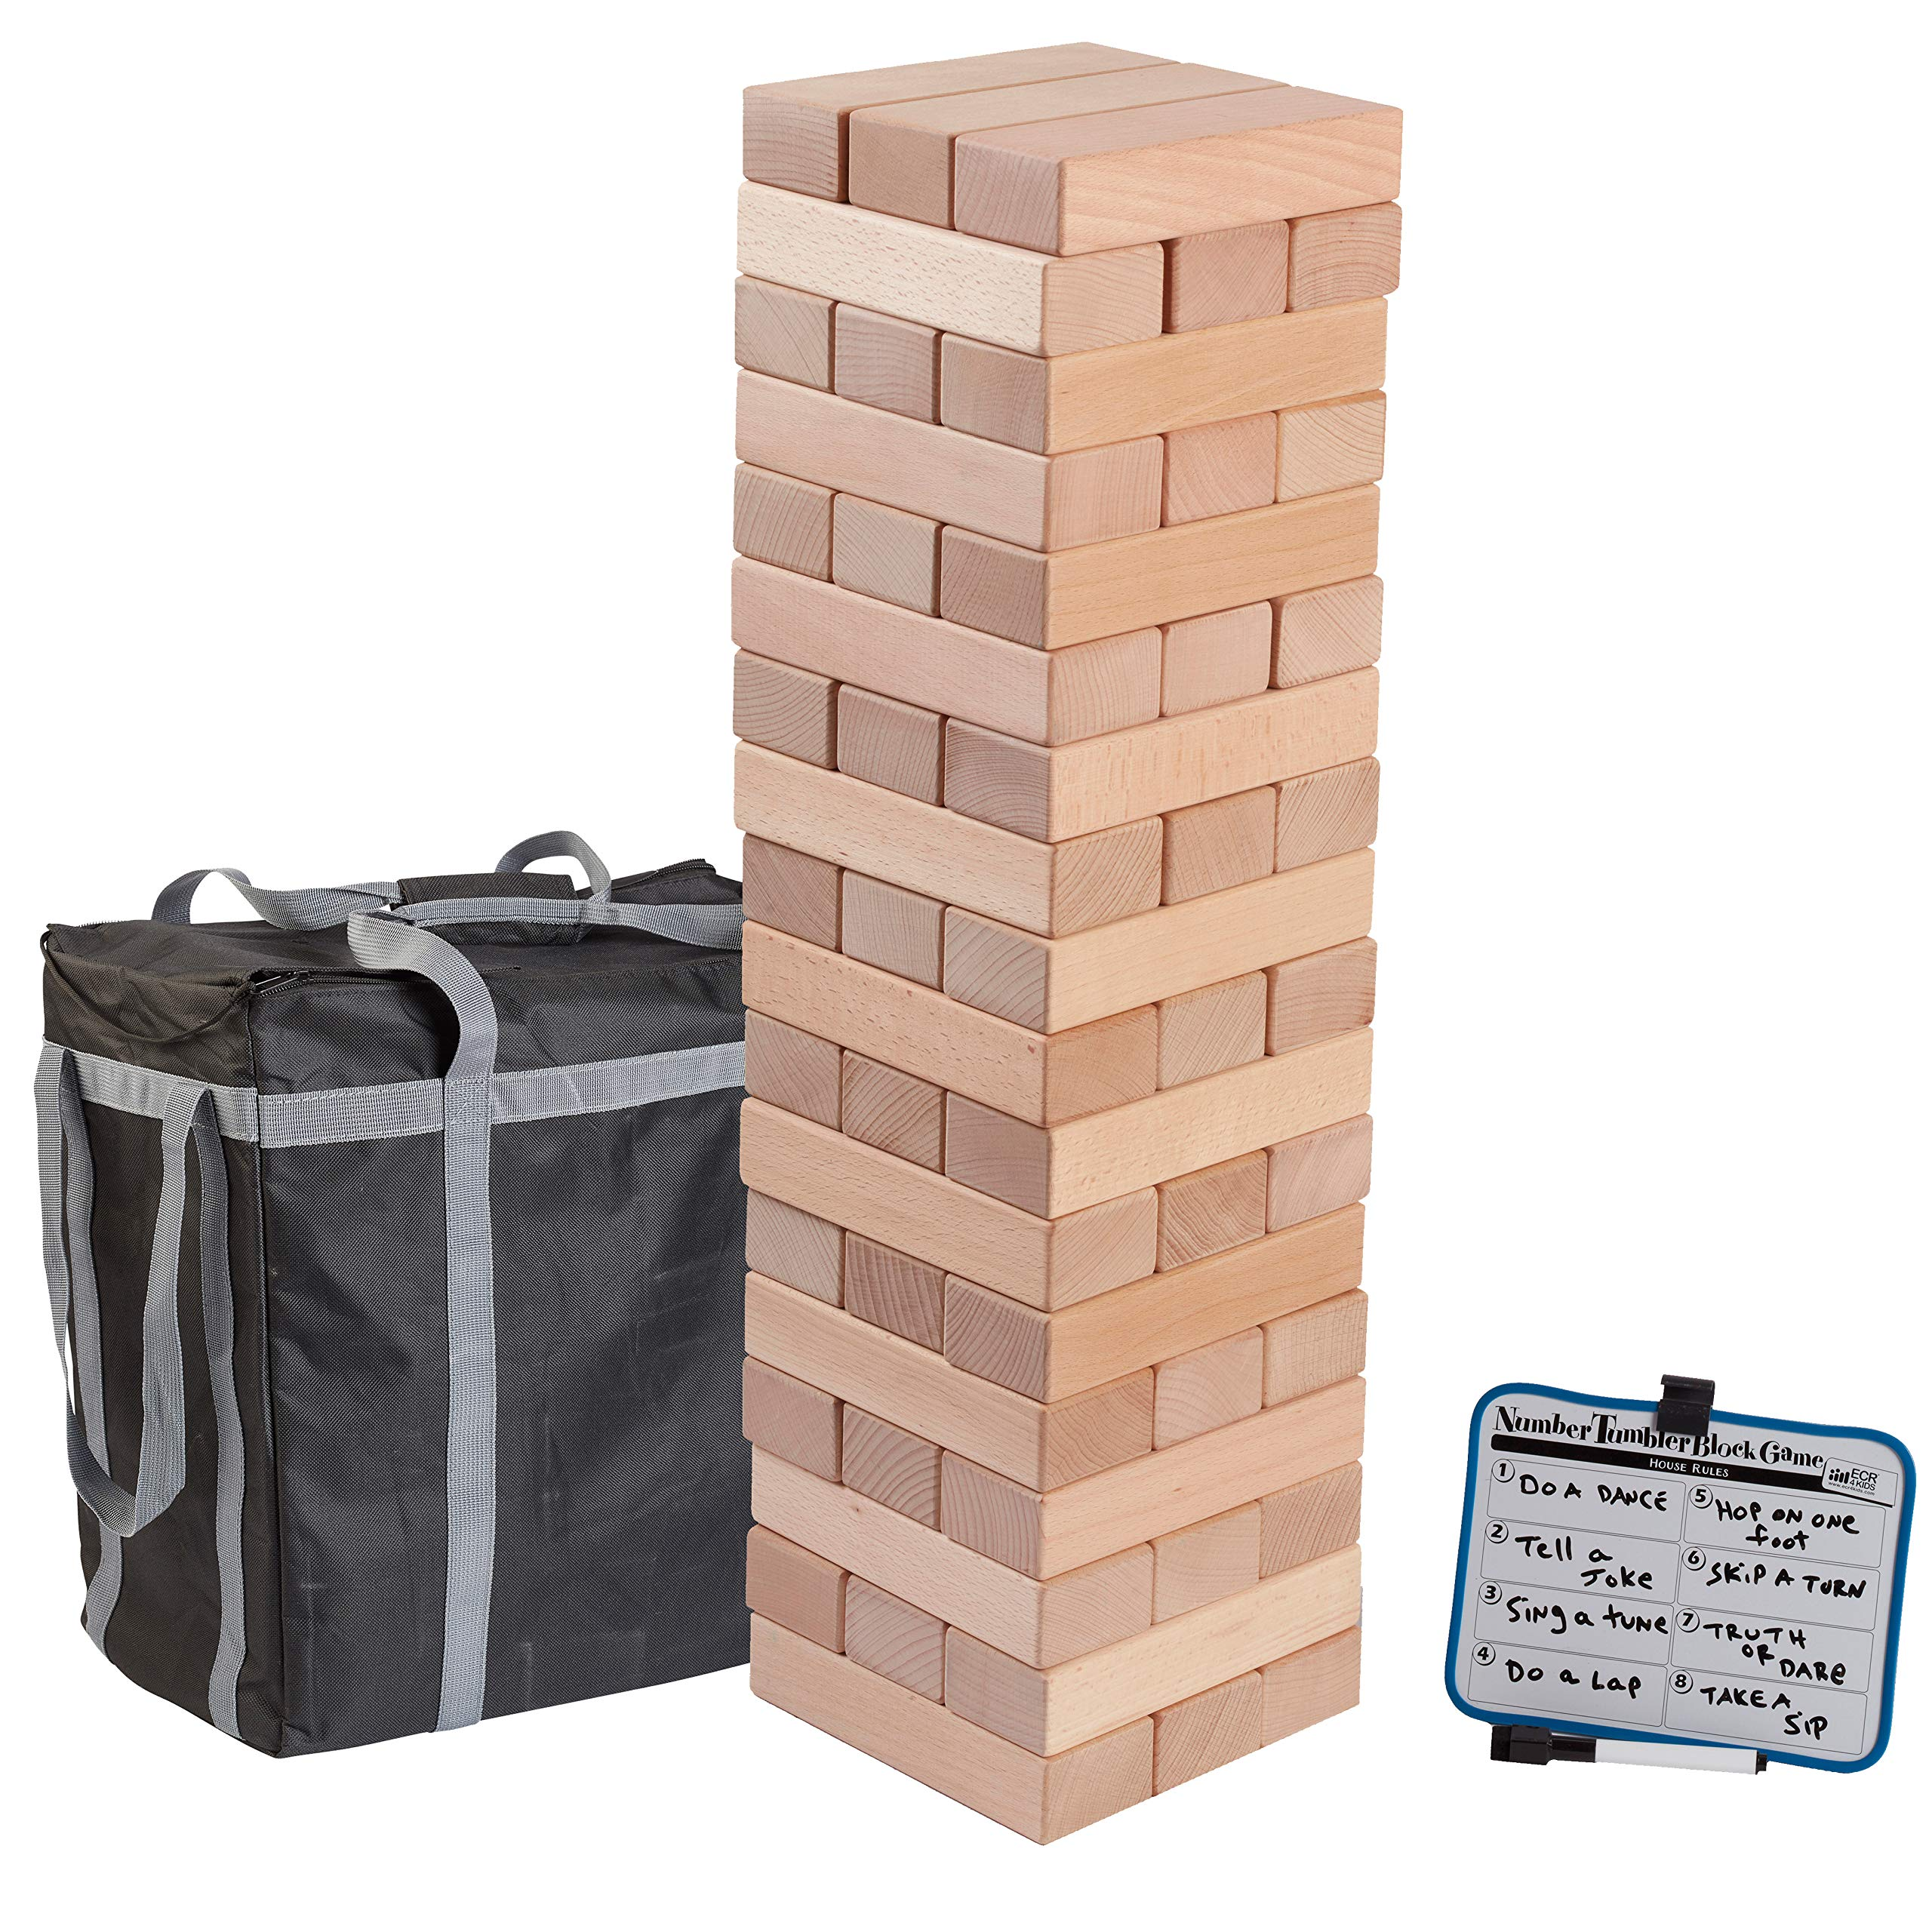 ECR4Kids Number Tumbler Giant Tumble Tower (Stacks to 5+ Feet), Large Wood Stacking Block Game with Storage Bag and Dry-Erase Board for Bonus Rules, Jumbo 28'' Tall (54-Piece Set) by ECR4Kids